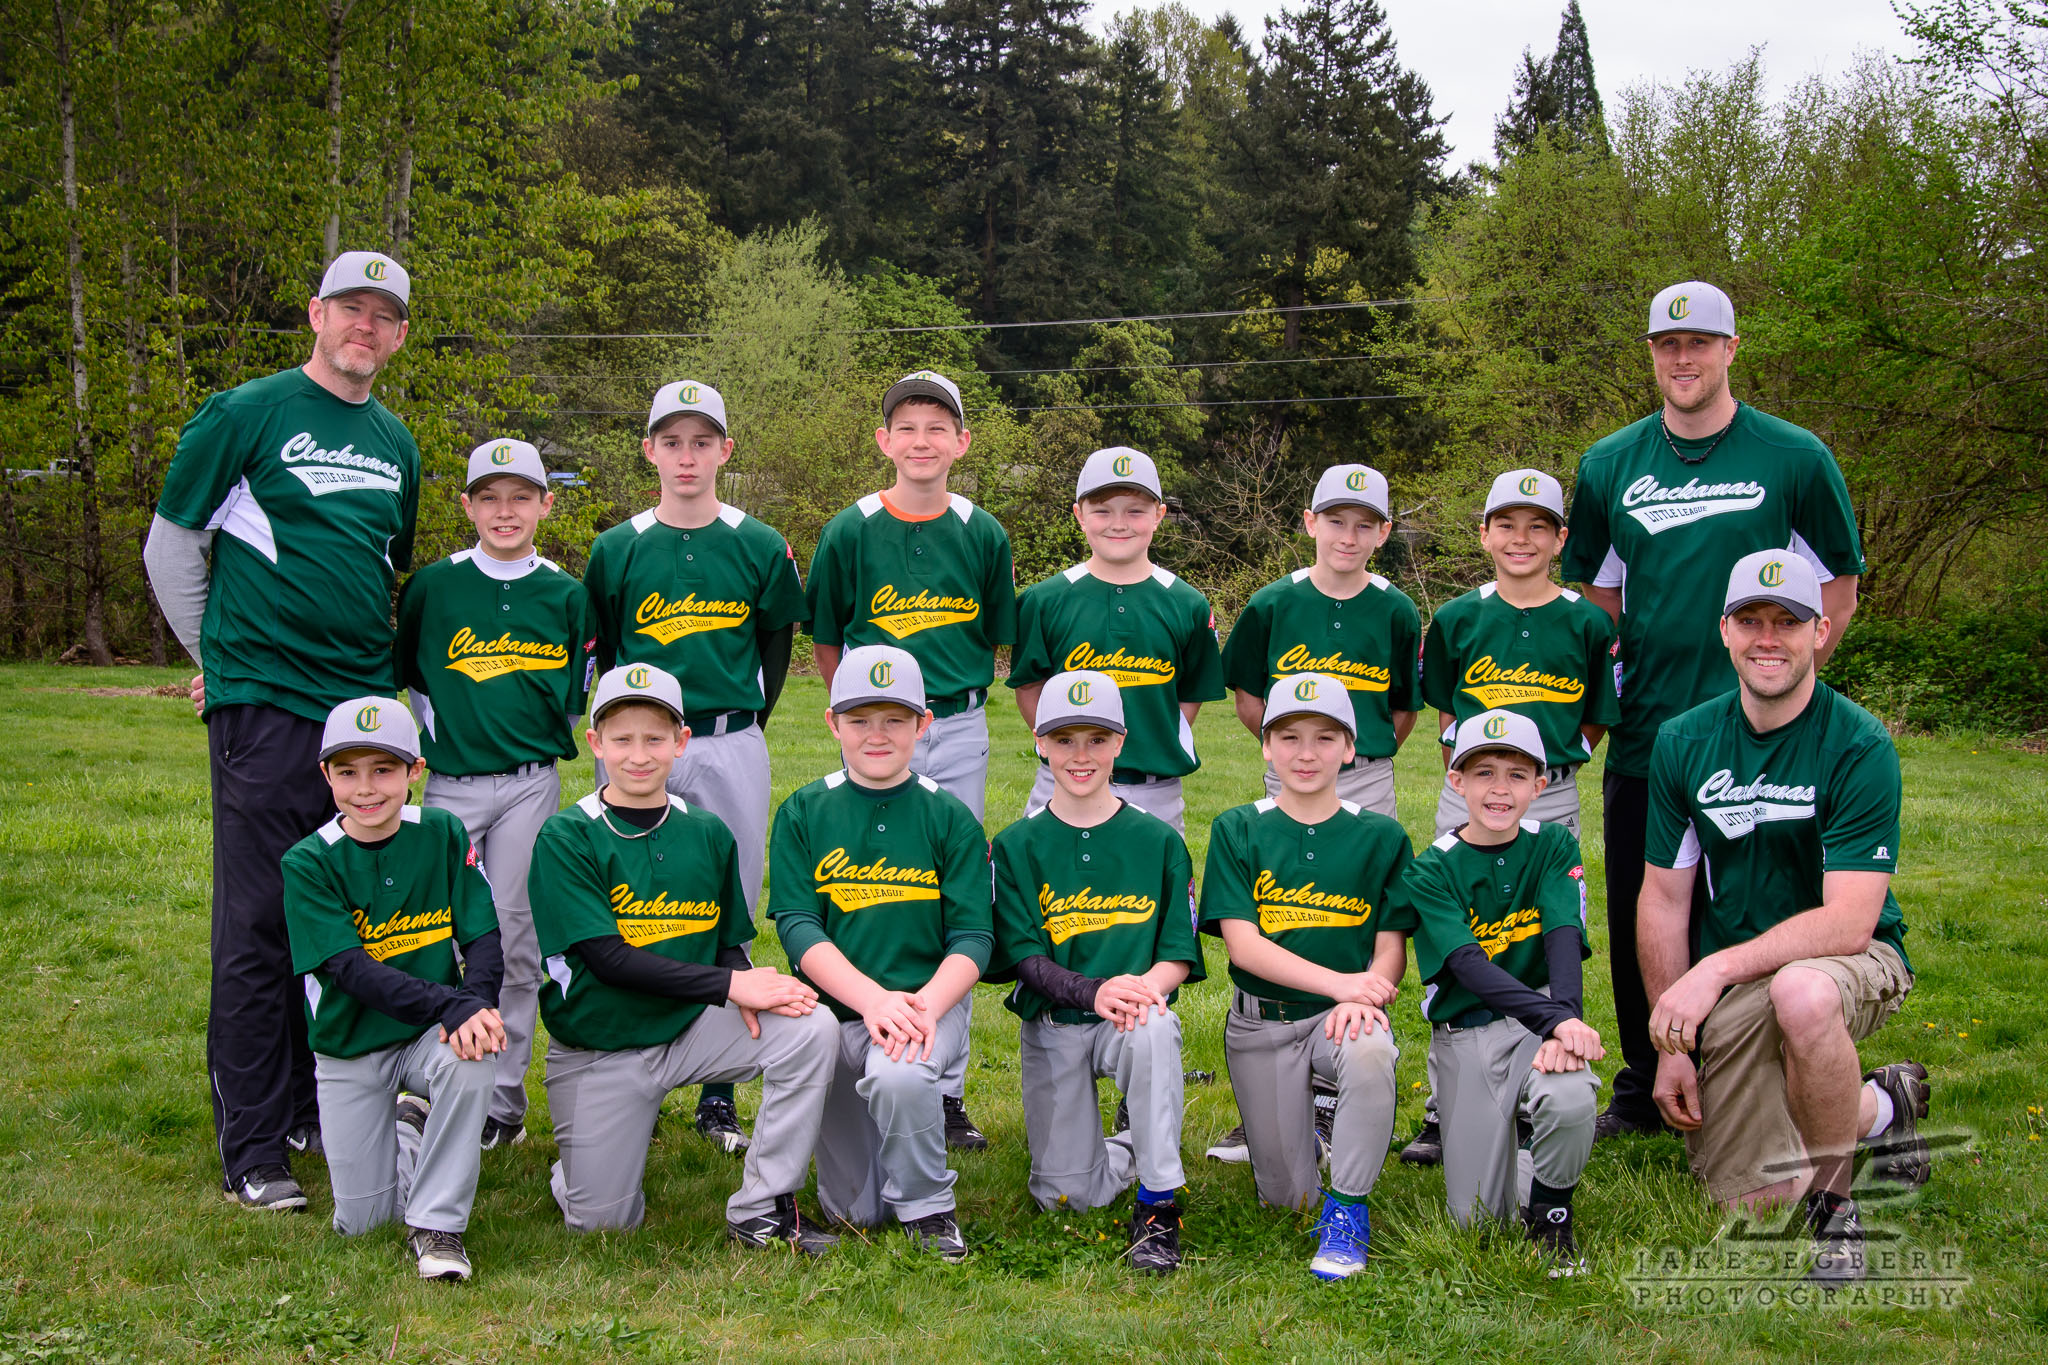 2014-04-12 - CLL Majors Green Sox Picture Day!